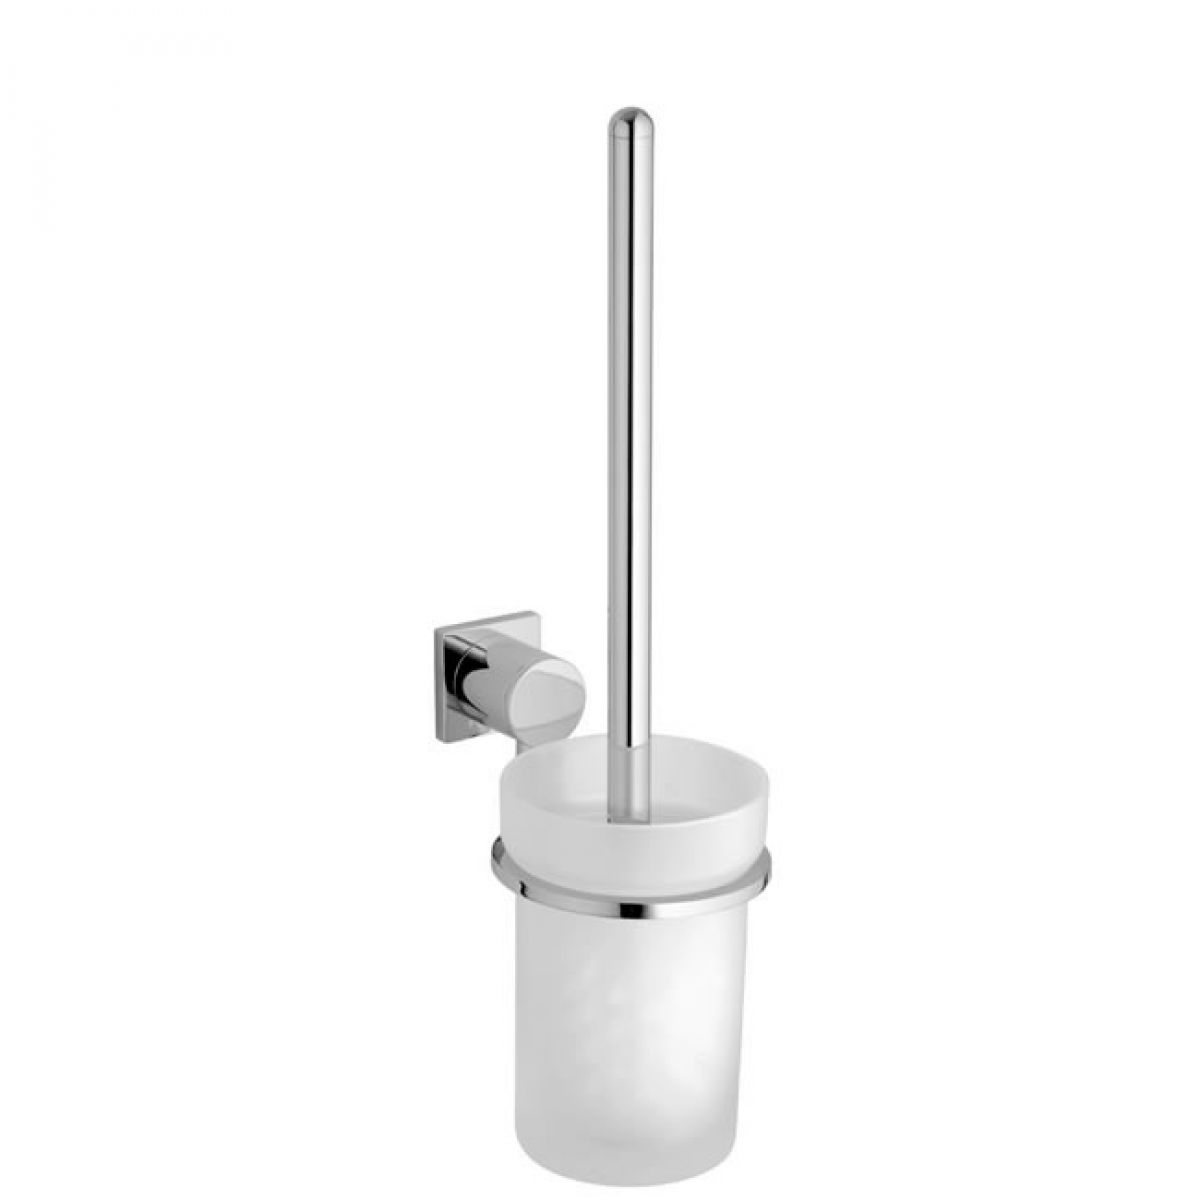 Grohe allure toilet brush set uk bathrooms for Bathroom accessories grohe